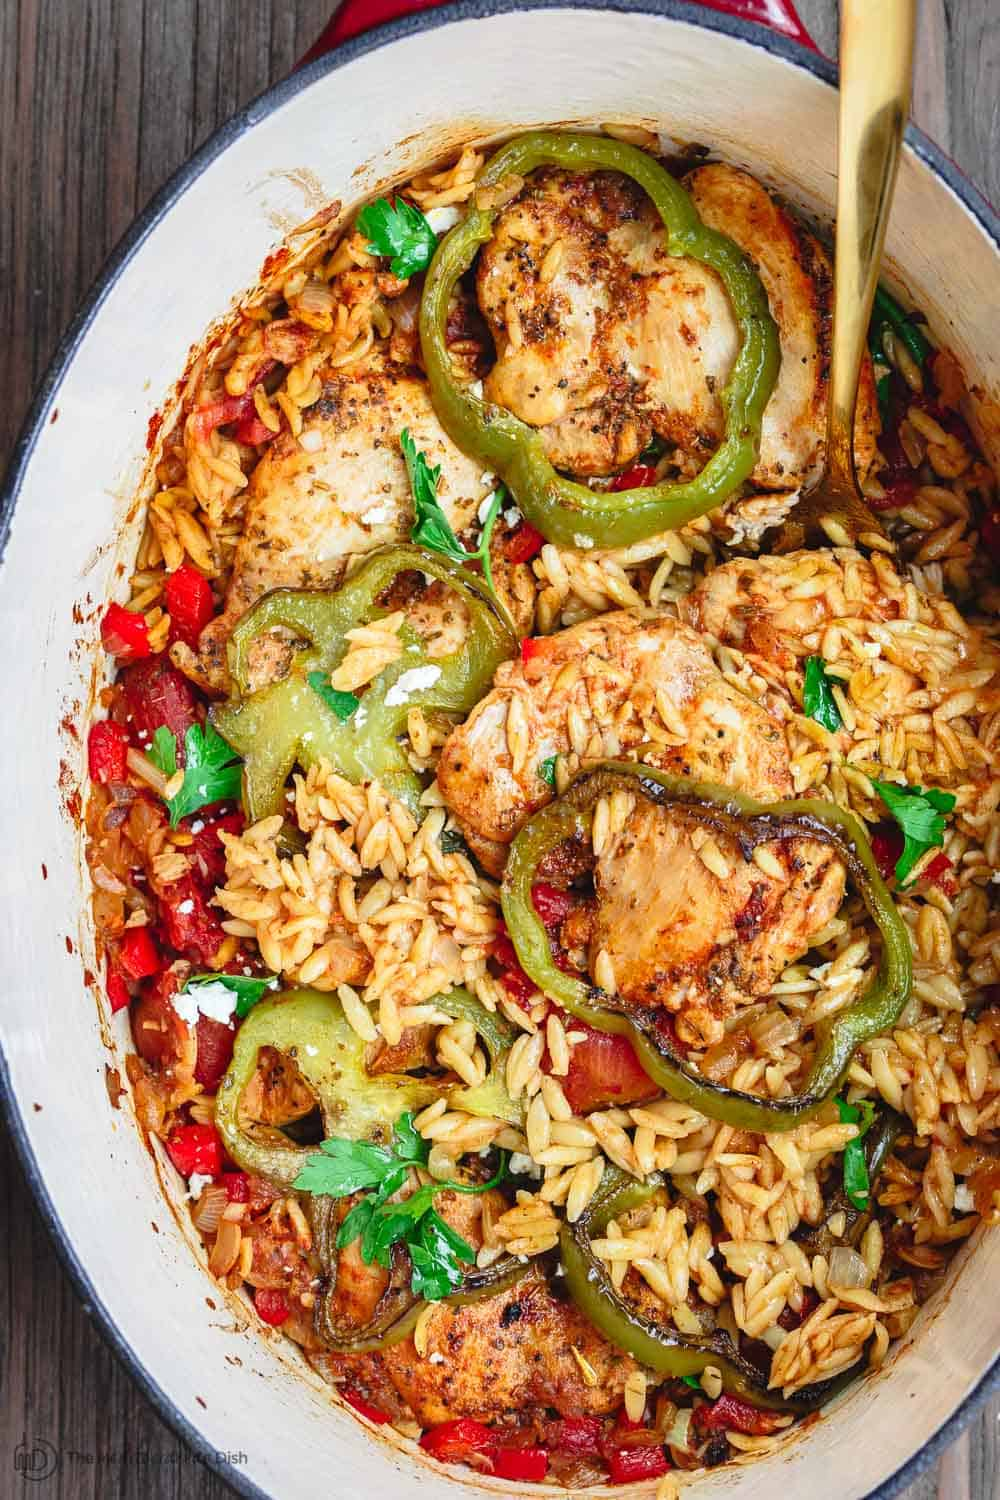 Greek Baked Chicken Orzo Recipe | The Mediterranean Dish. This is the perfect weeknight dinner! One-pot Greek chicken with orzo, onions, bell peppers, and tomato. And loads of Greek flavors. From themediterraneandish.com #greekfood #mediterraneanfood #mediterraneandiet #chickendinner #chickenrecipe #healthyrecipe #onepotdinner #easydinner